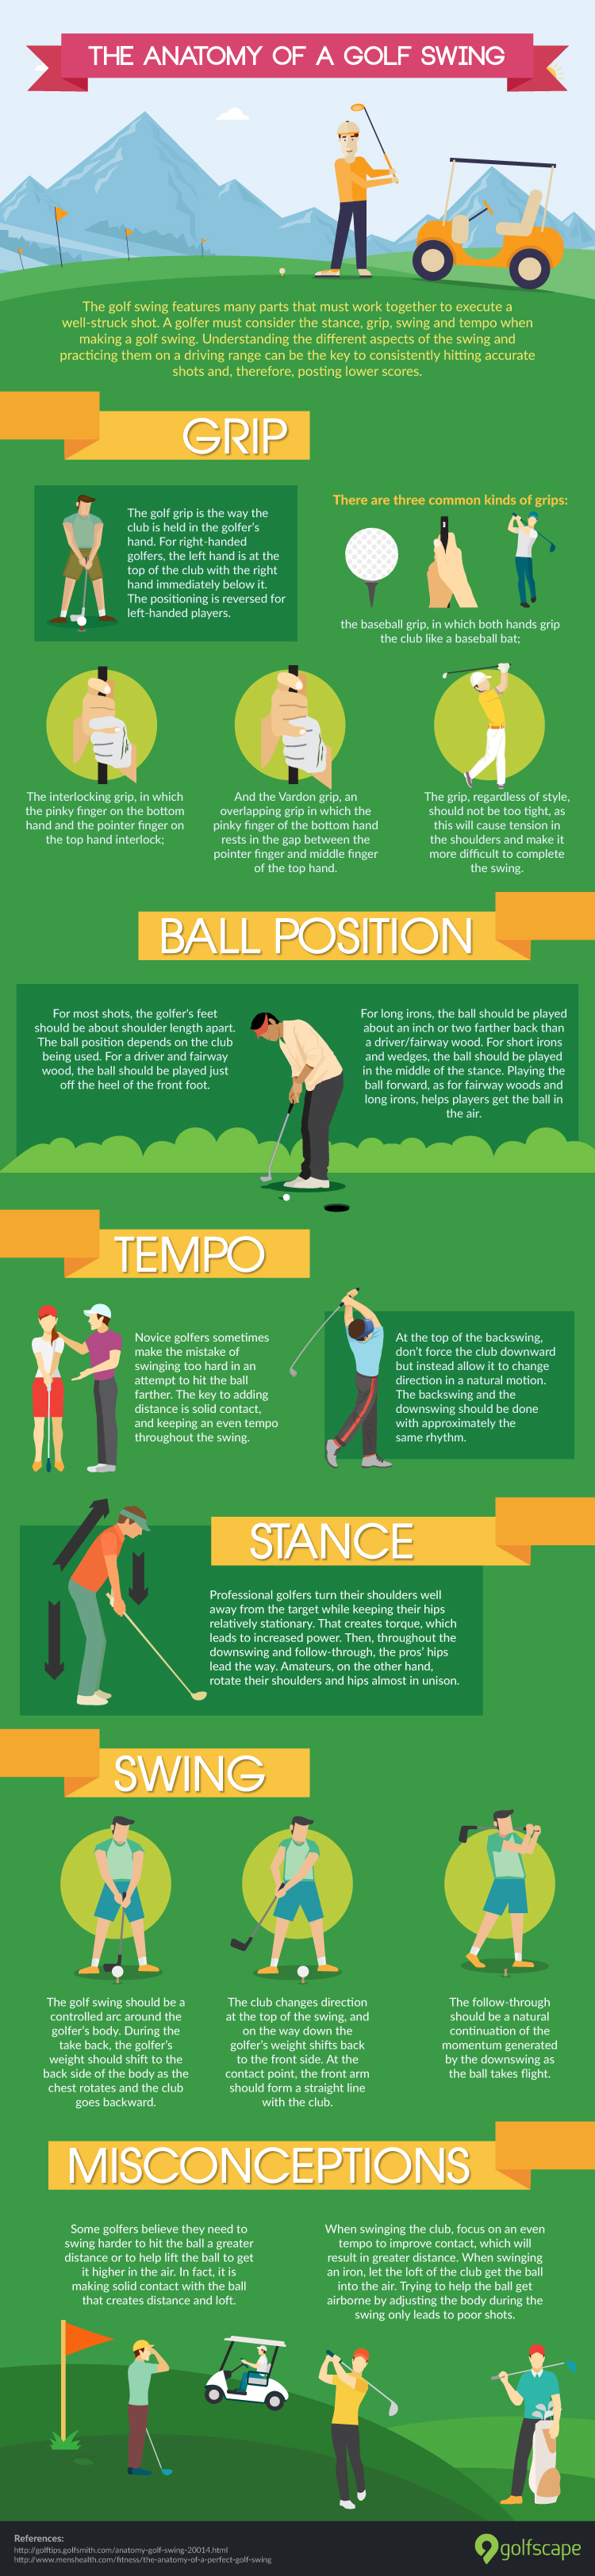 The anatomy of a golf swing